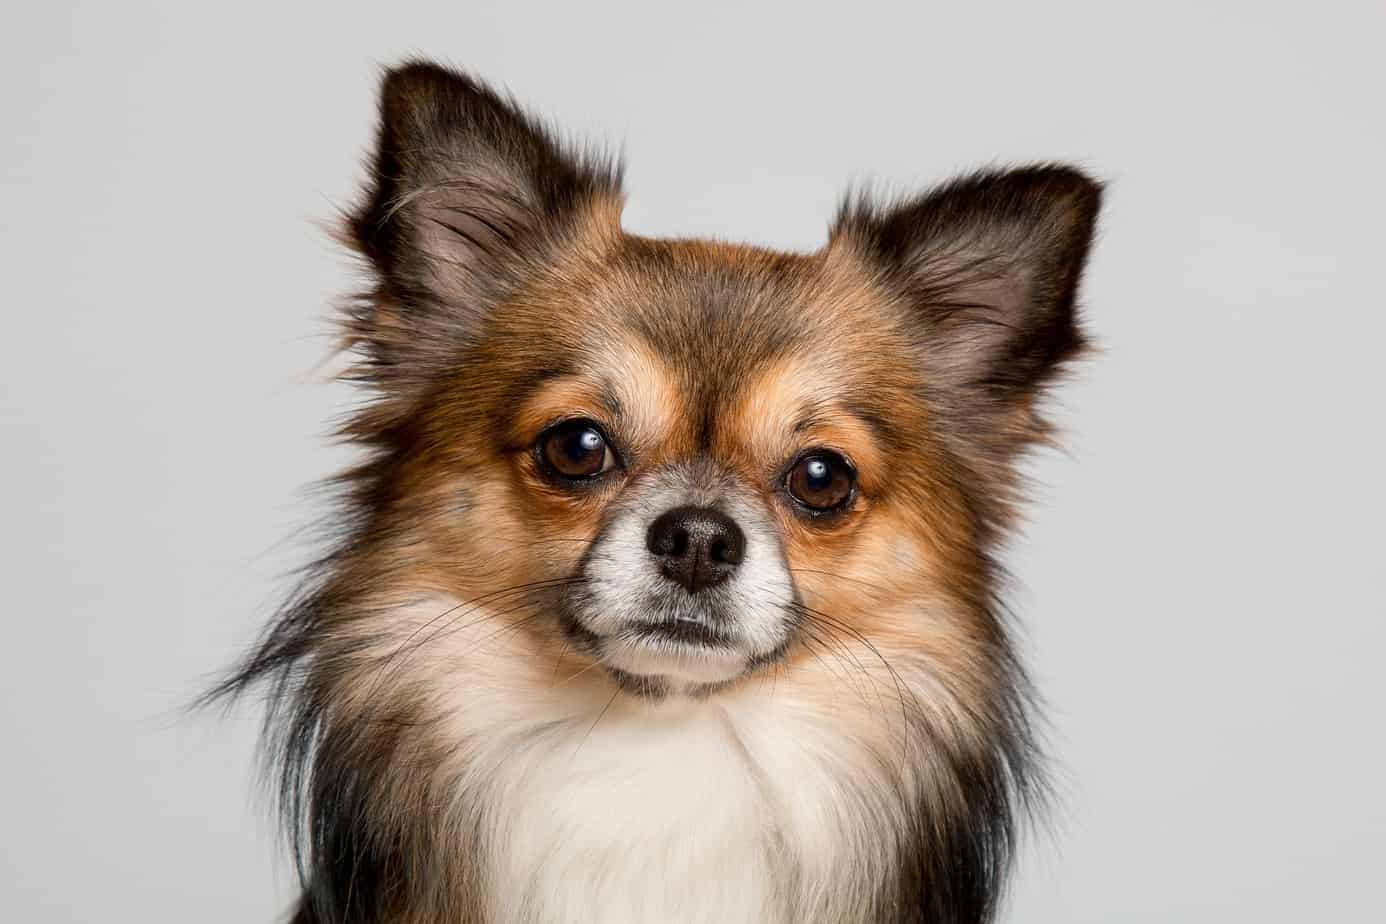 The long-haired apple head Chihuahua is more common and has fluffier fur like a stuffed toy.